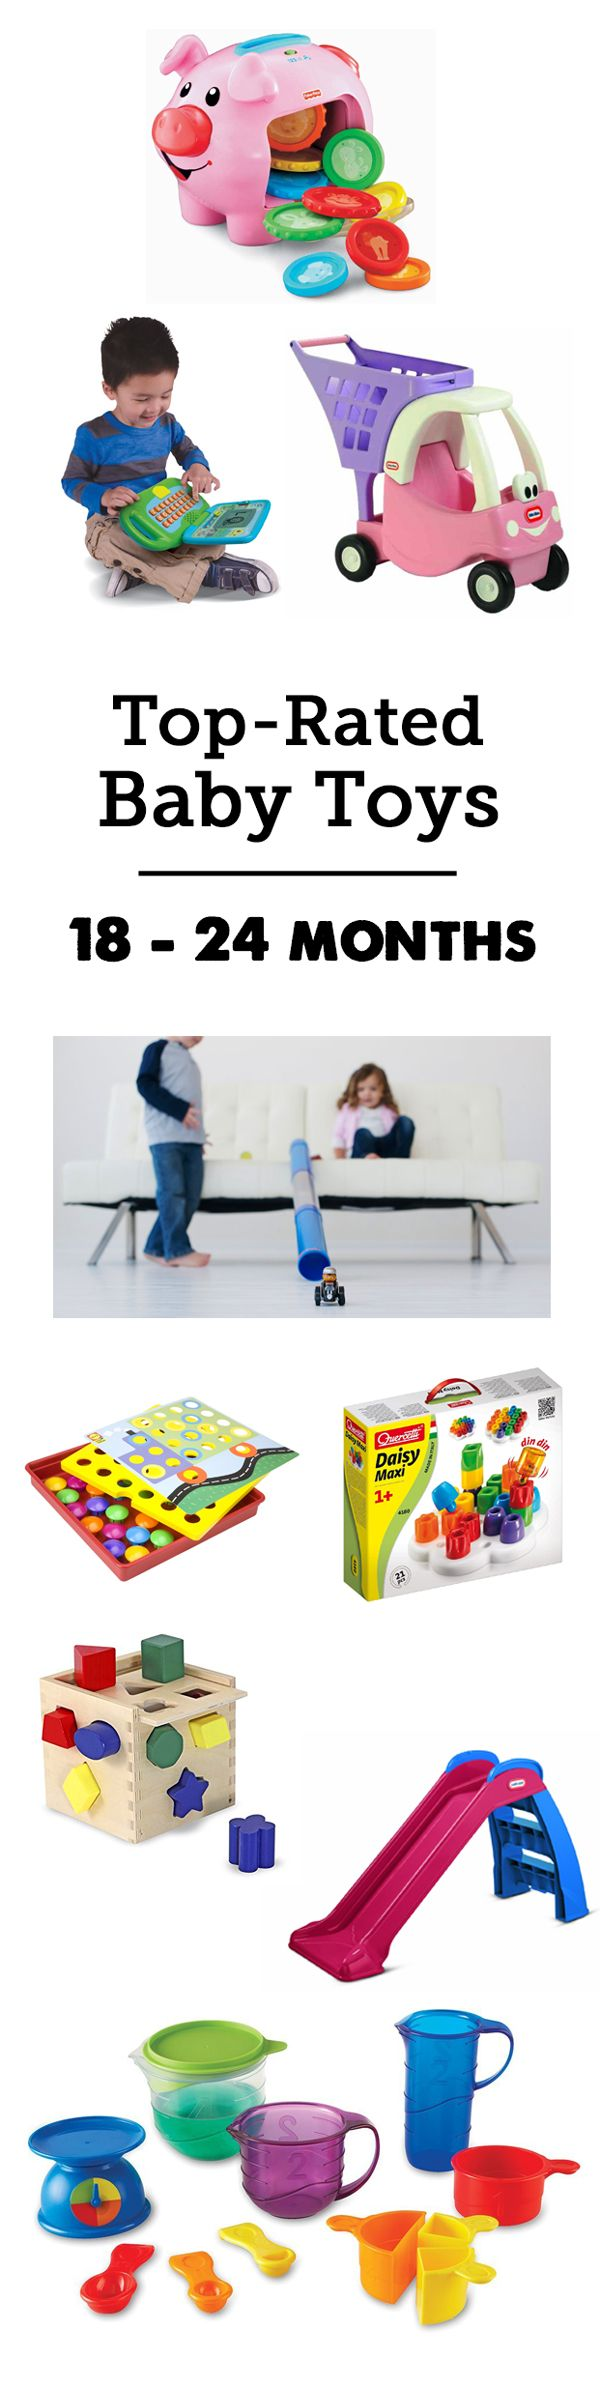 Toddler Development Toys : Top ideas about best toys for toddlers on pinterest